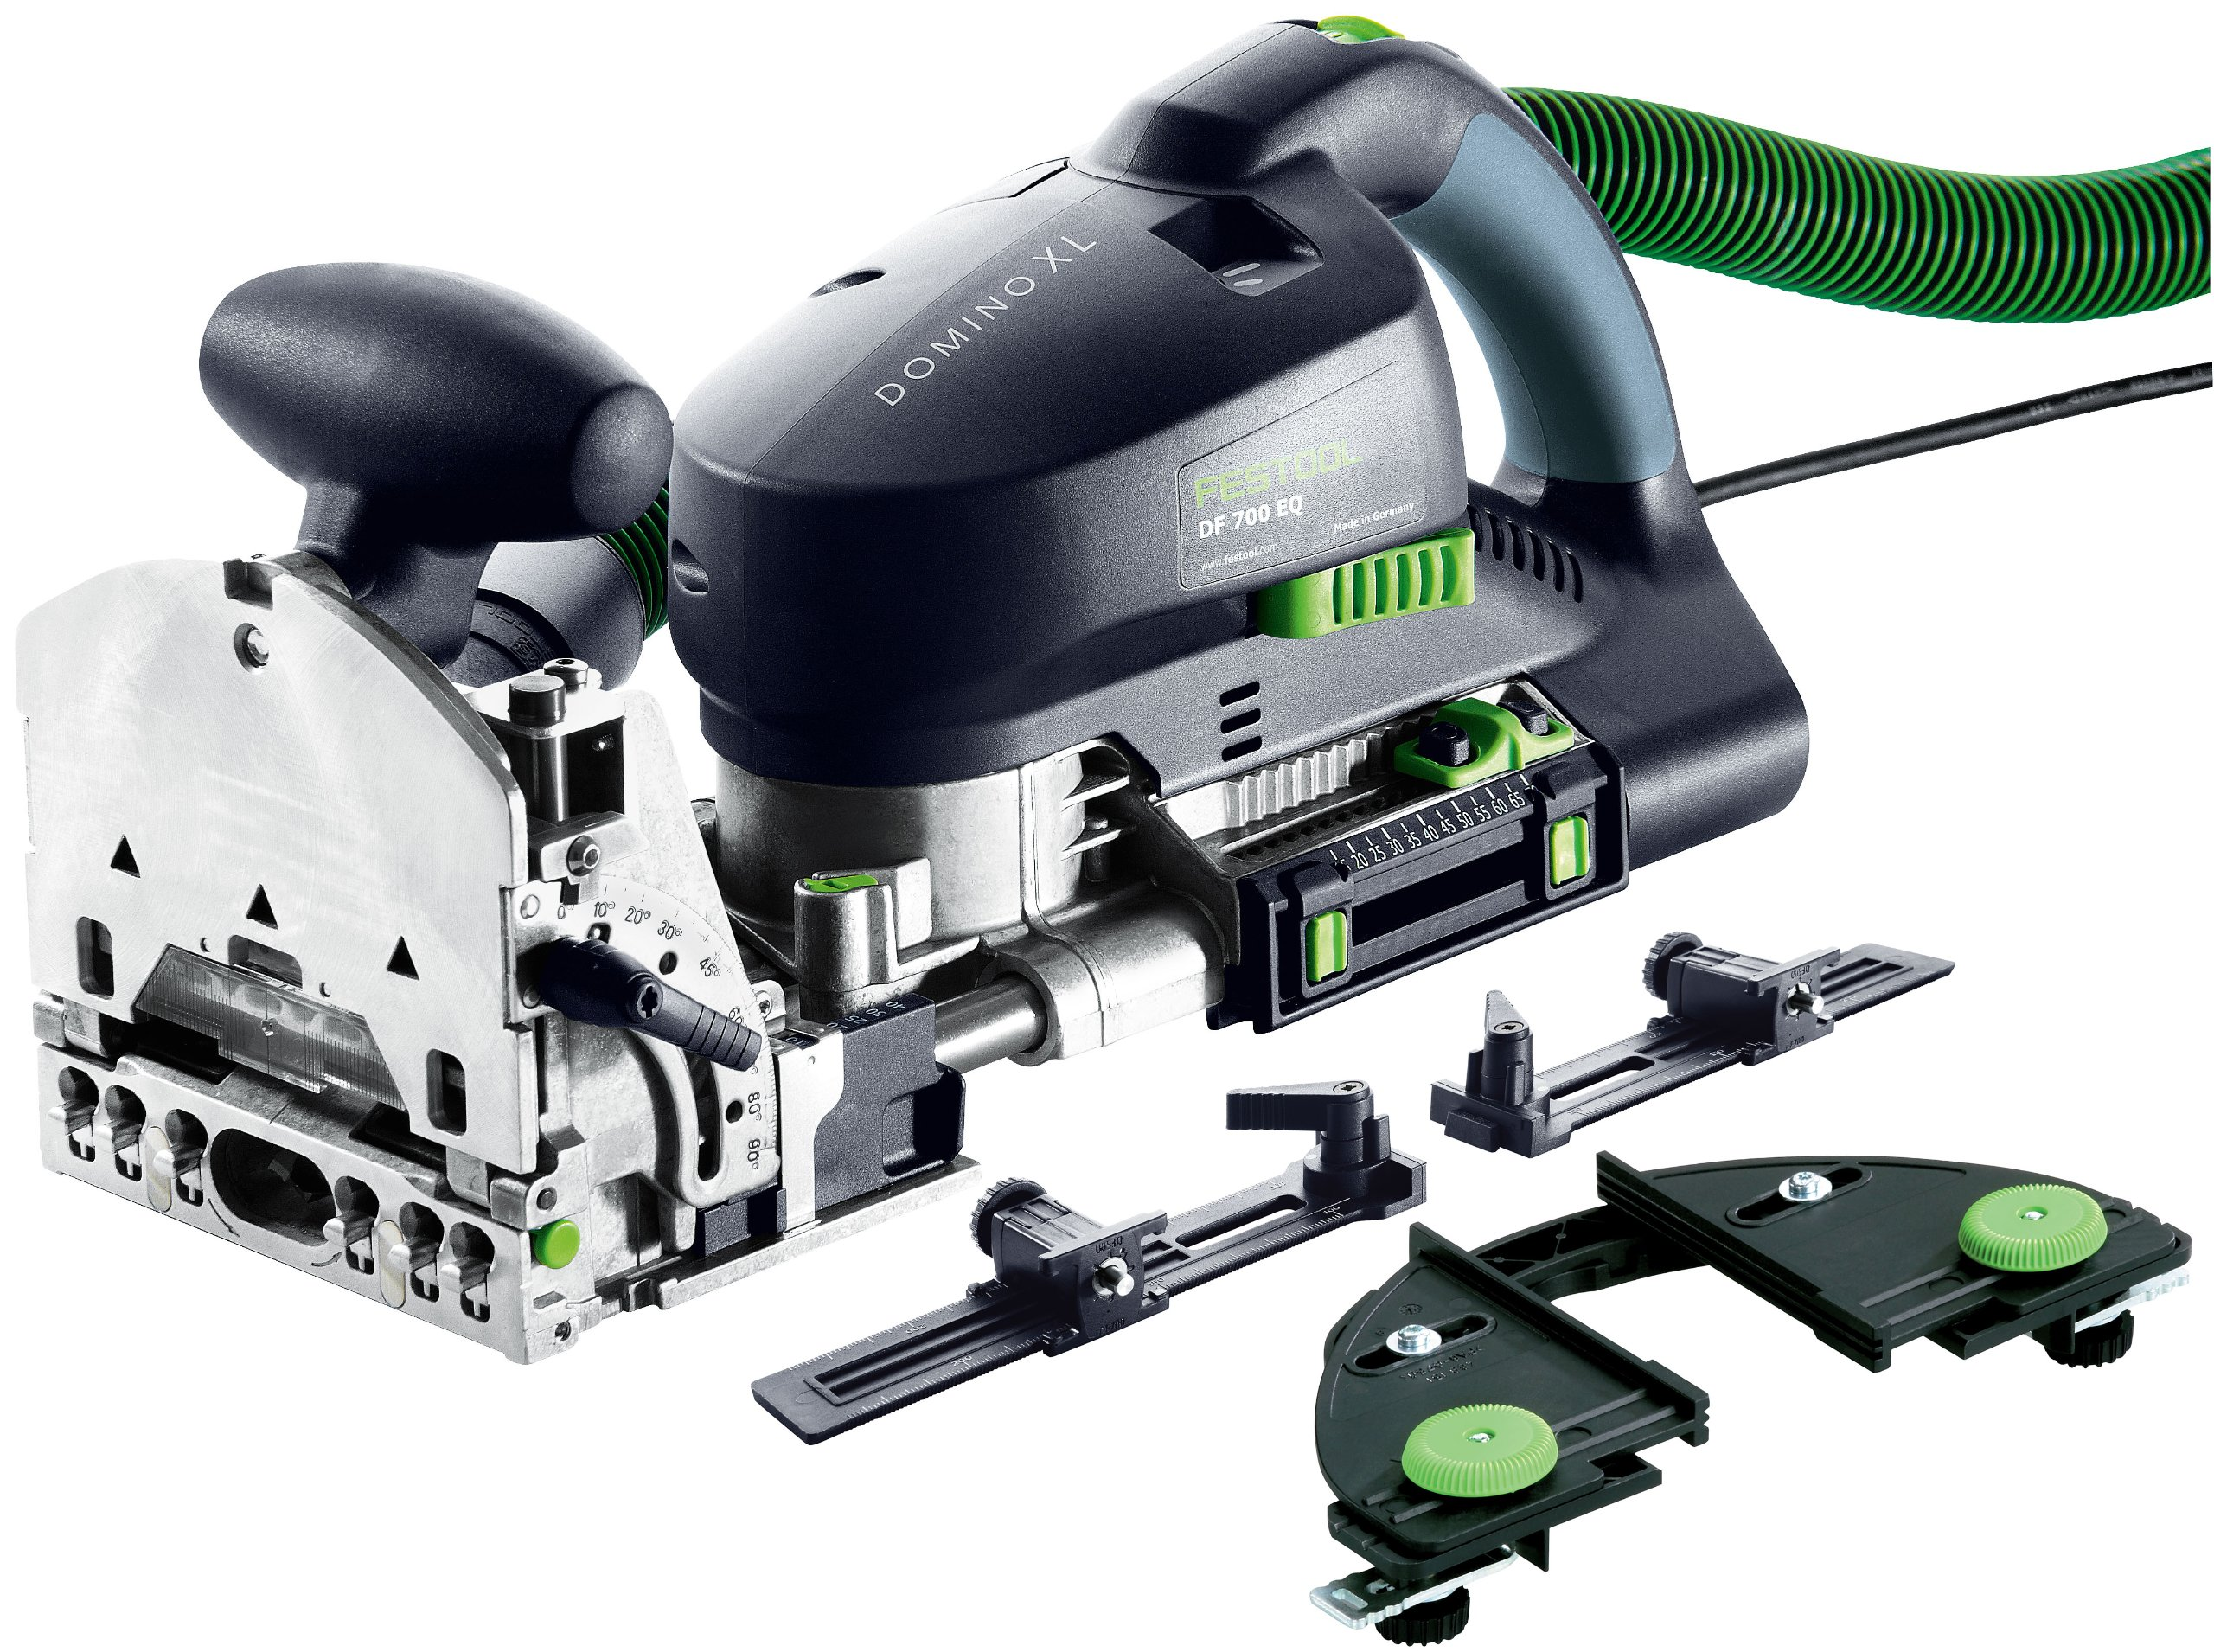 Festool 574447 XL DF 700 Domino Joiner Set by Festool